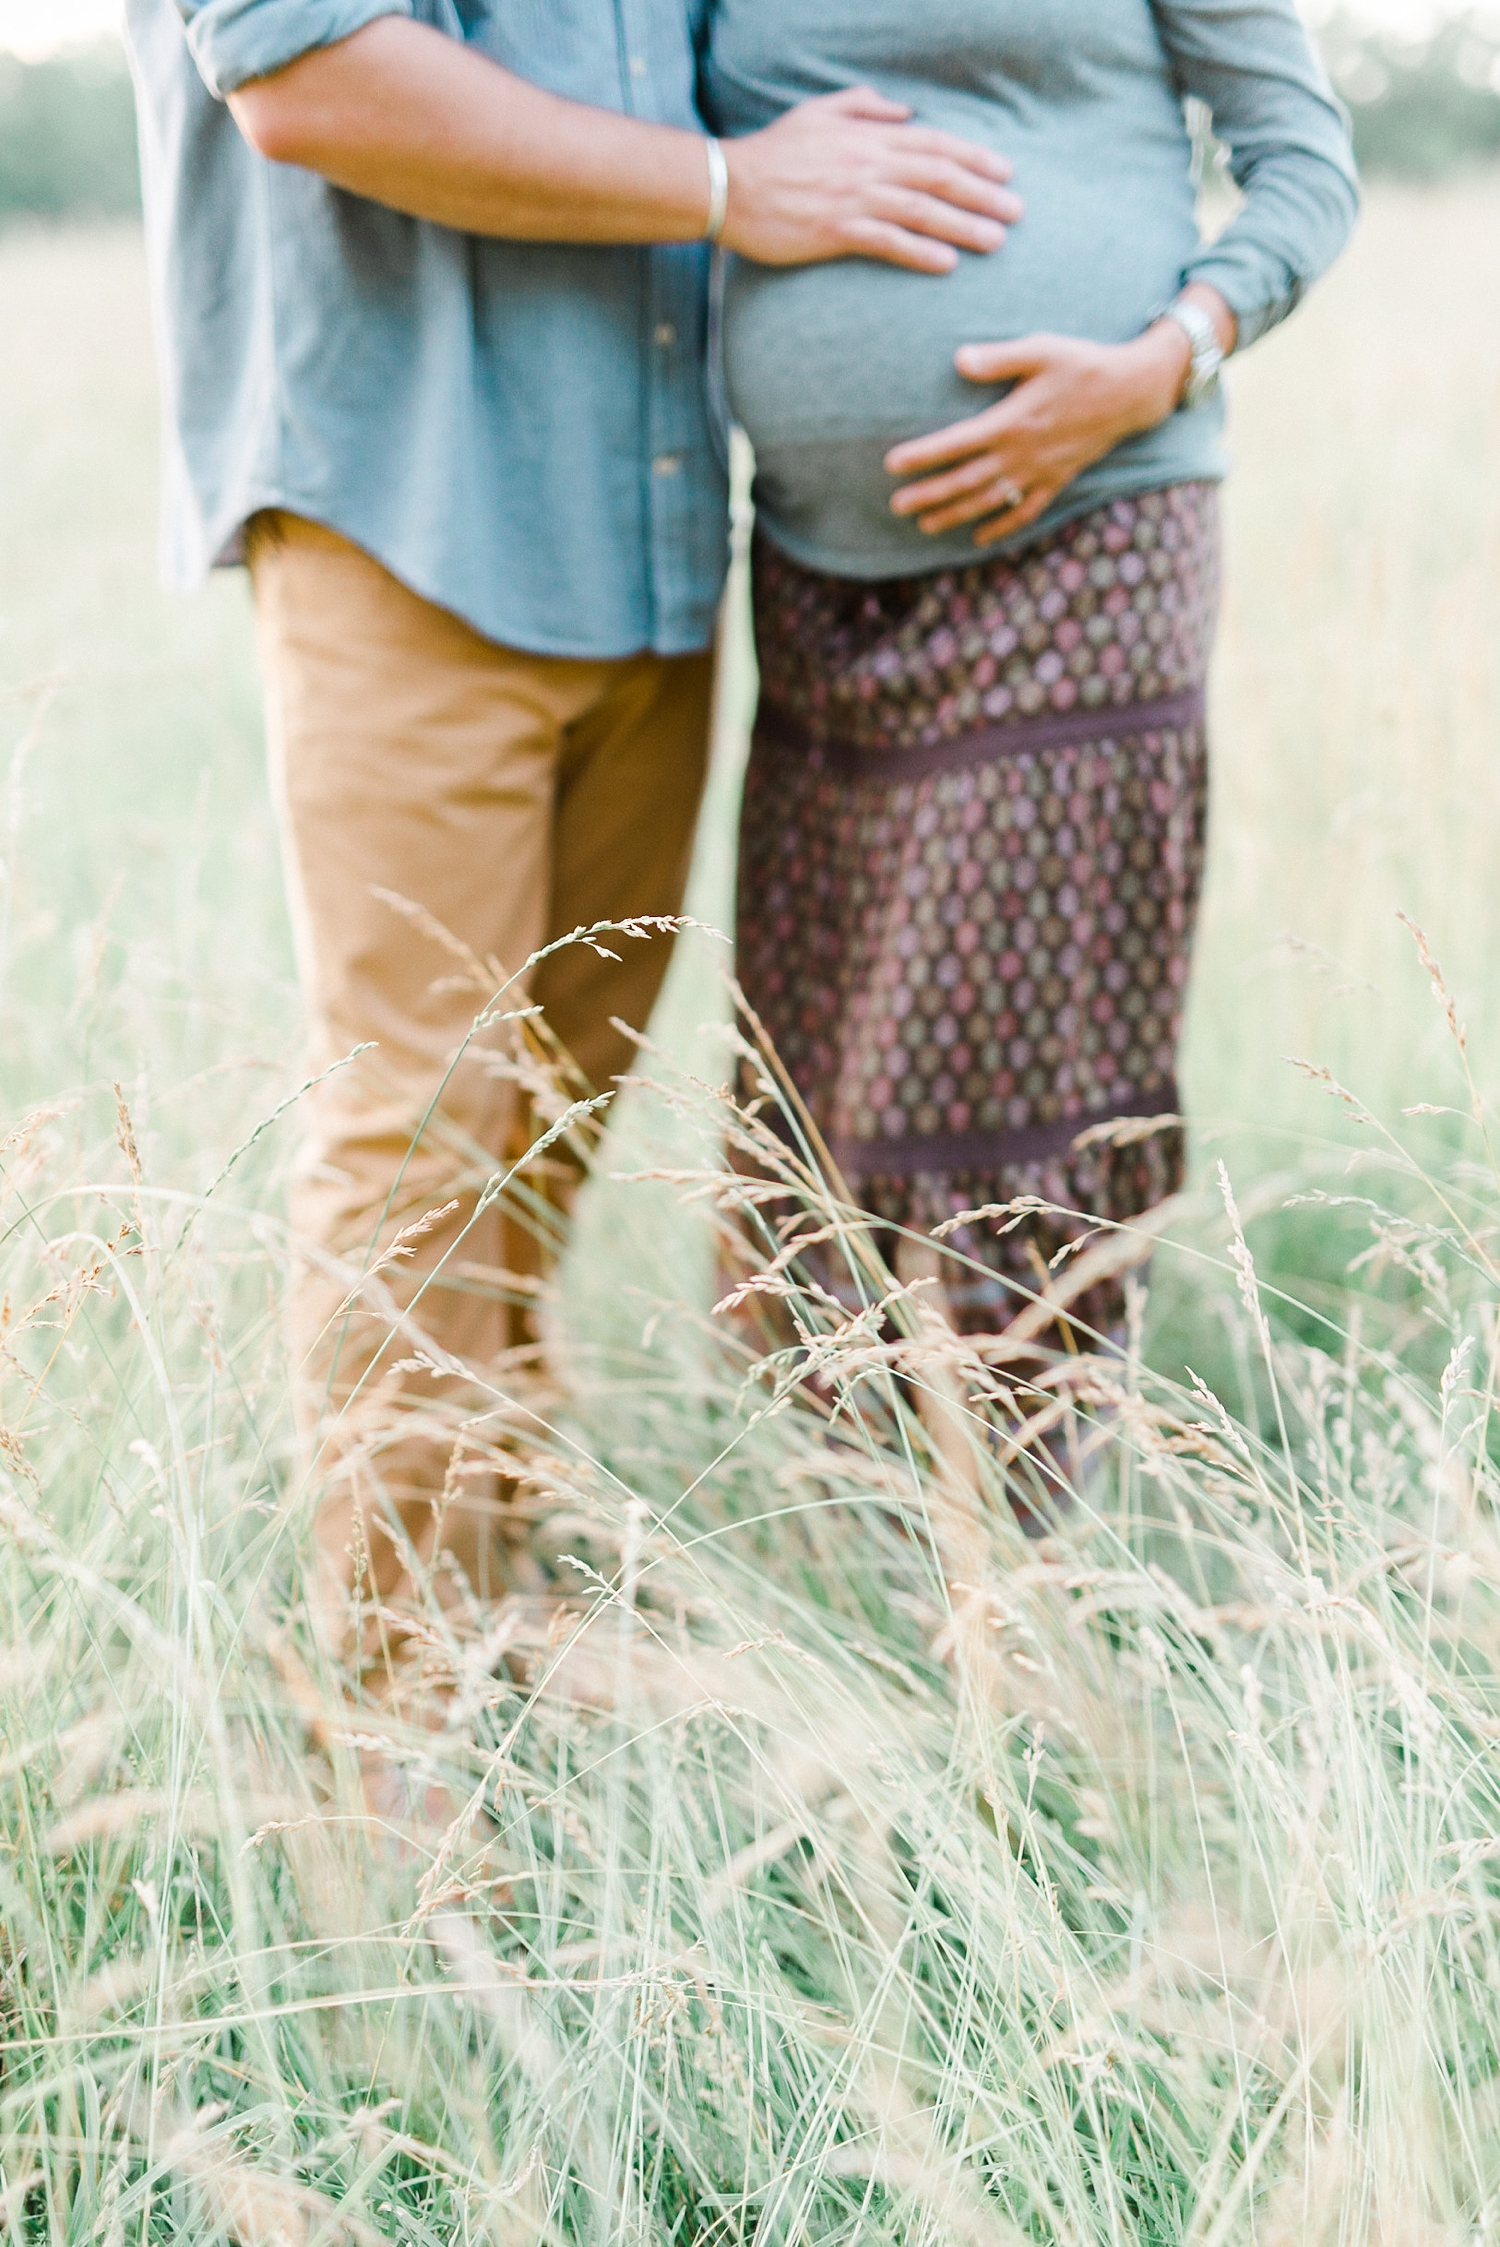 richmond_virginia_maternity_photographer_tuckahoe_plantation_0014.jpg